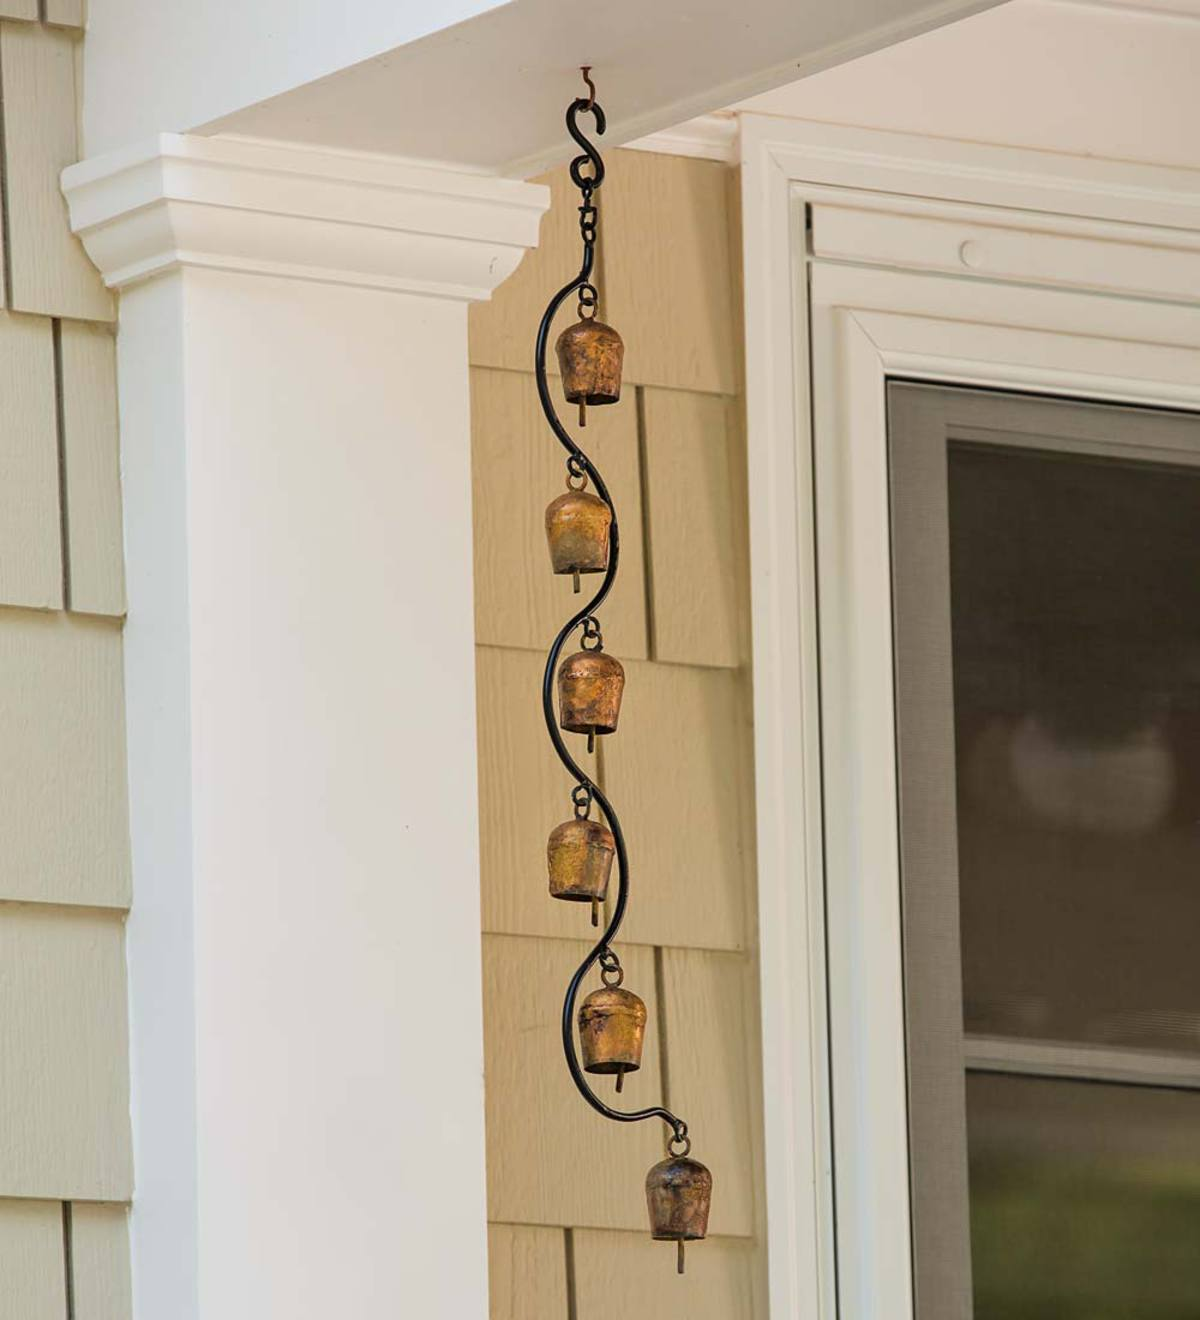 Hanging Bell Wind Chime